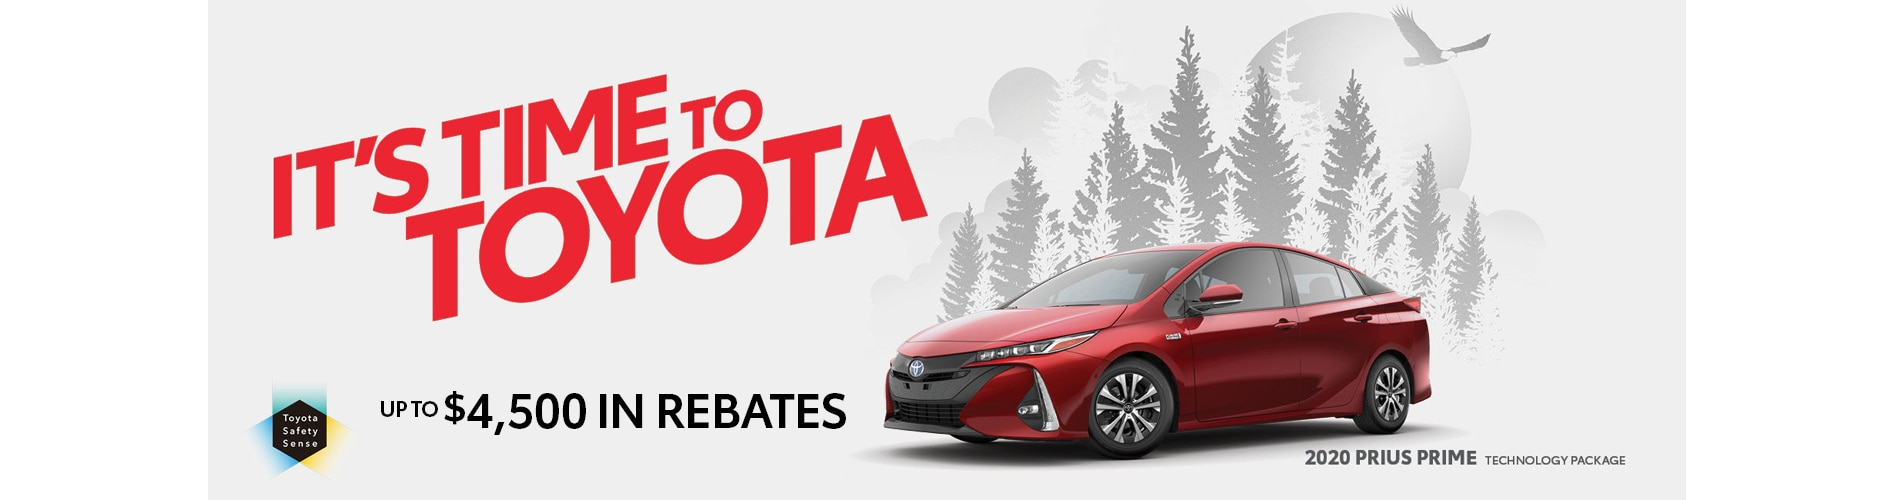 Destination Toyota Burnaby | New & Used Toyota Dealership in Burnaby